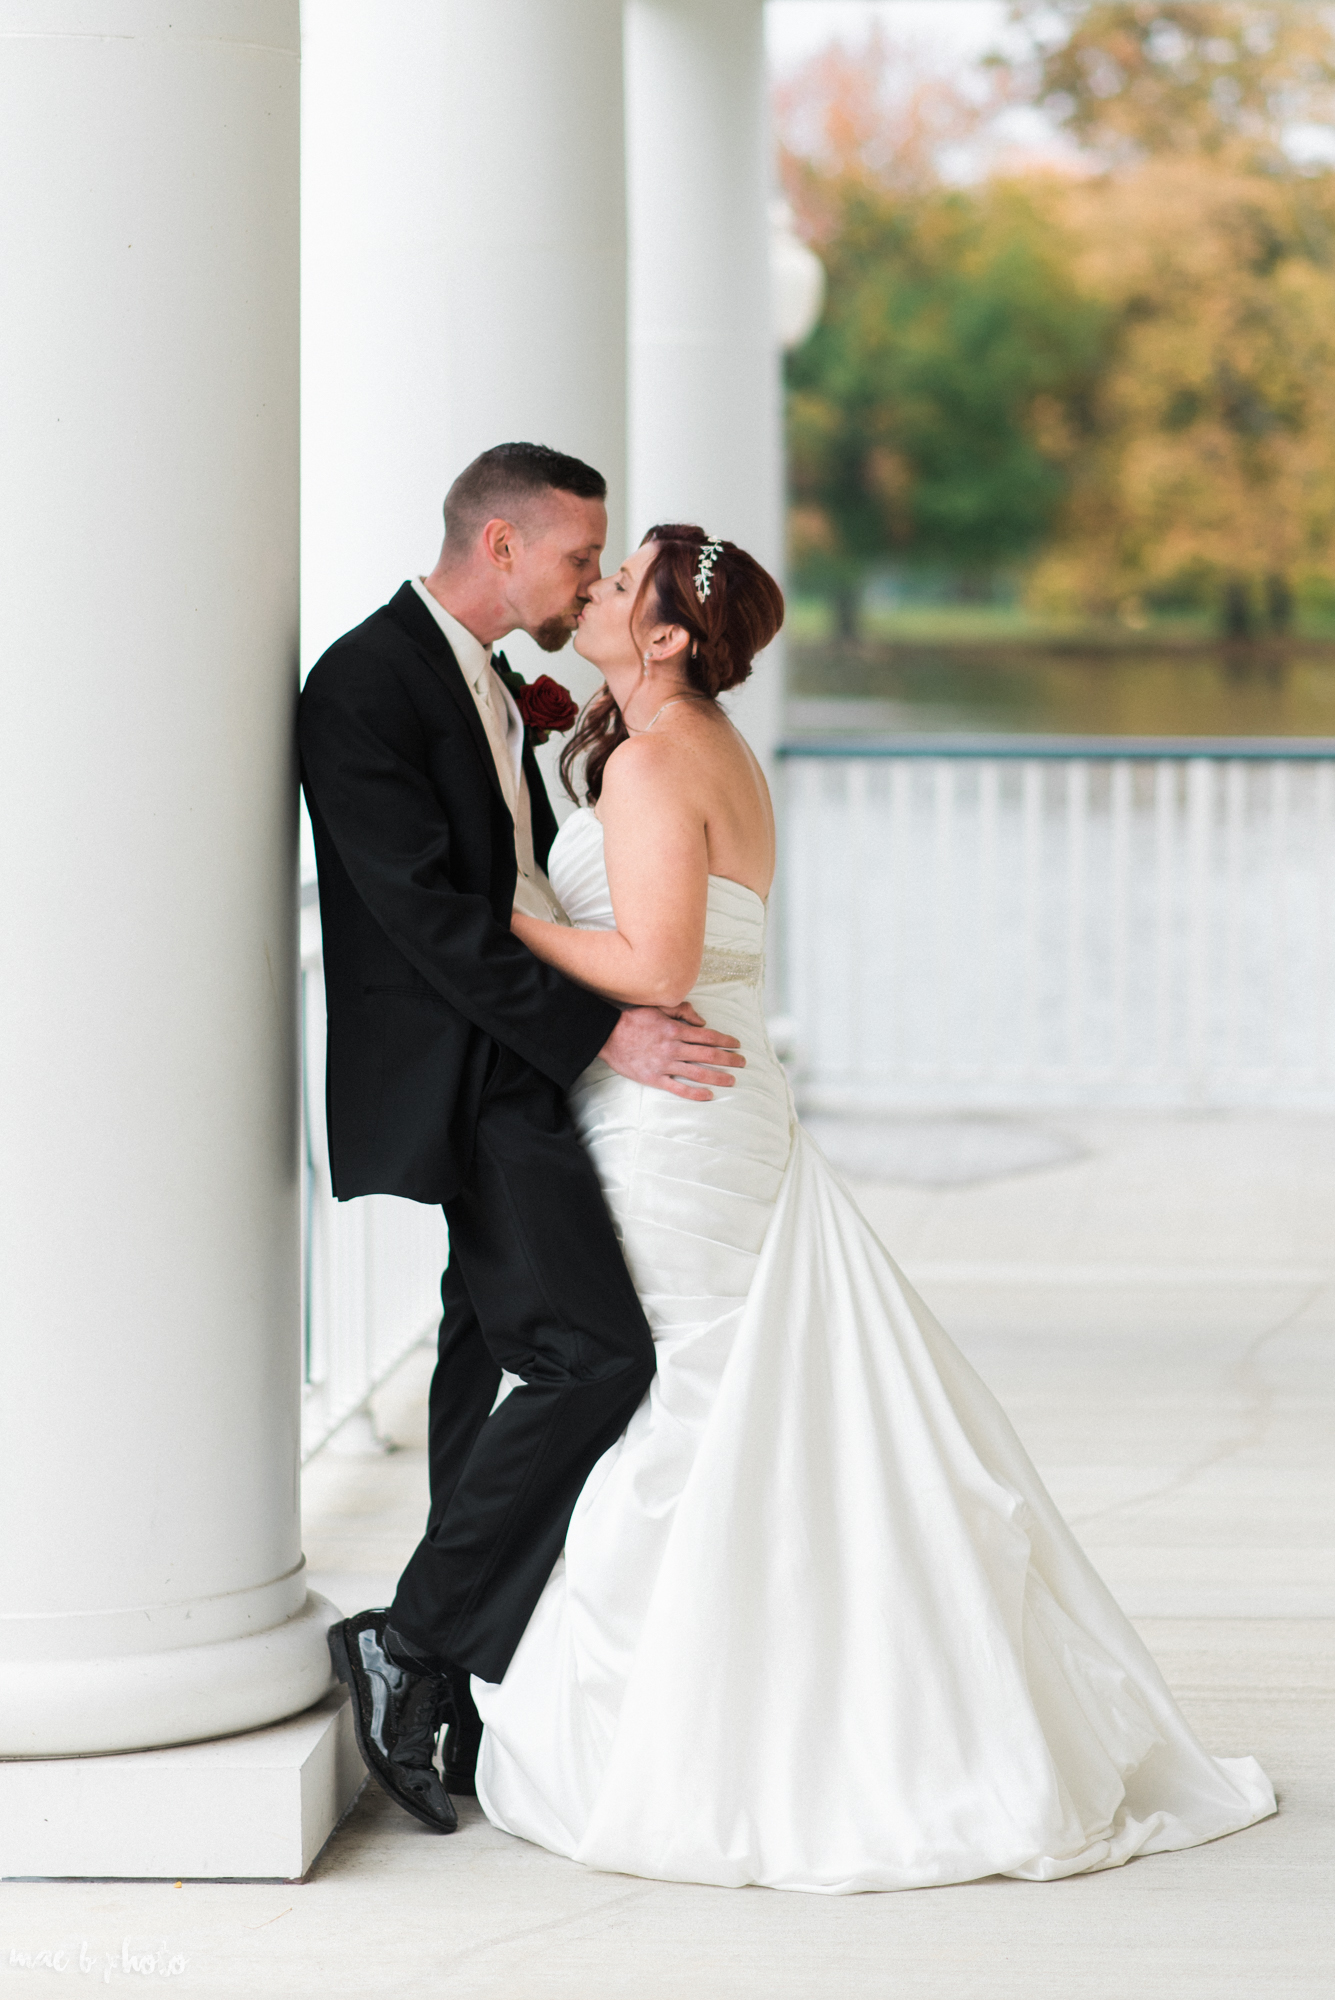 tracey and aaron's personal fall wedding at tiffany's banquet center in brookfield ohio-68.jpg